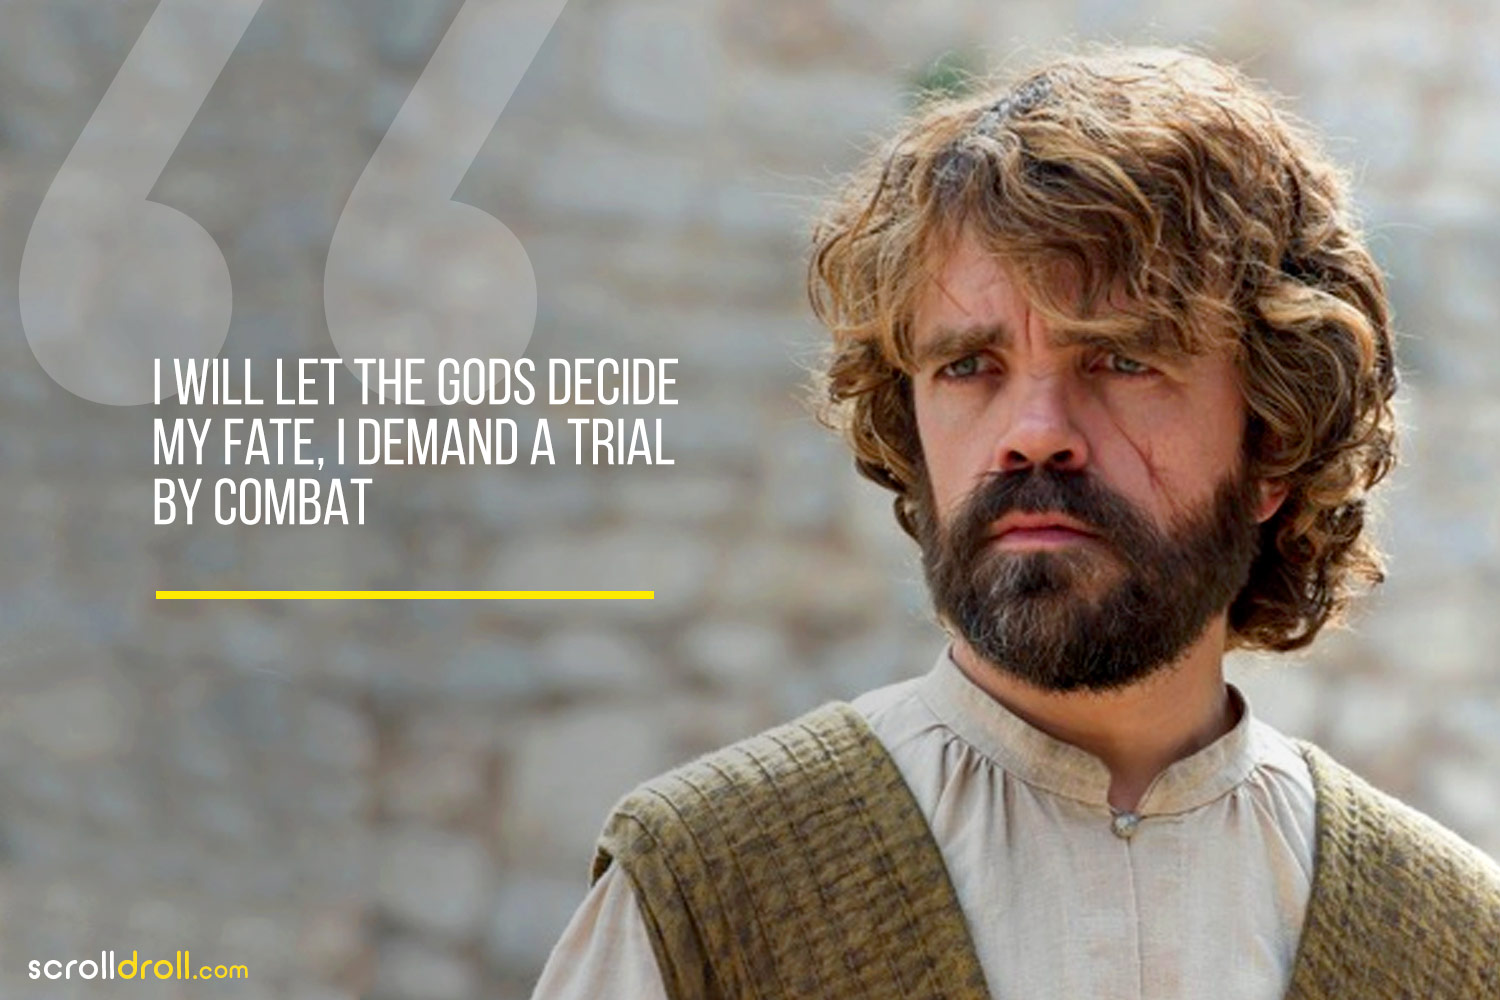 Tyrion-I will Let the goods decide my fate,I Deamnd a trial by combat